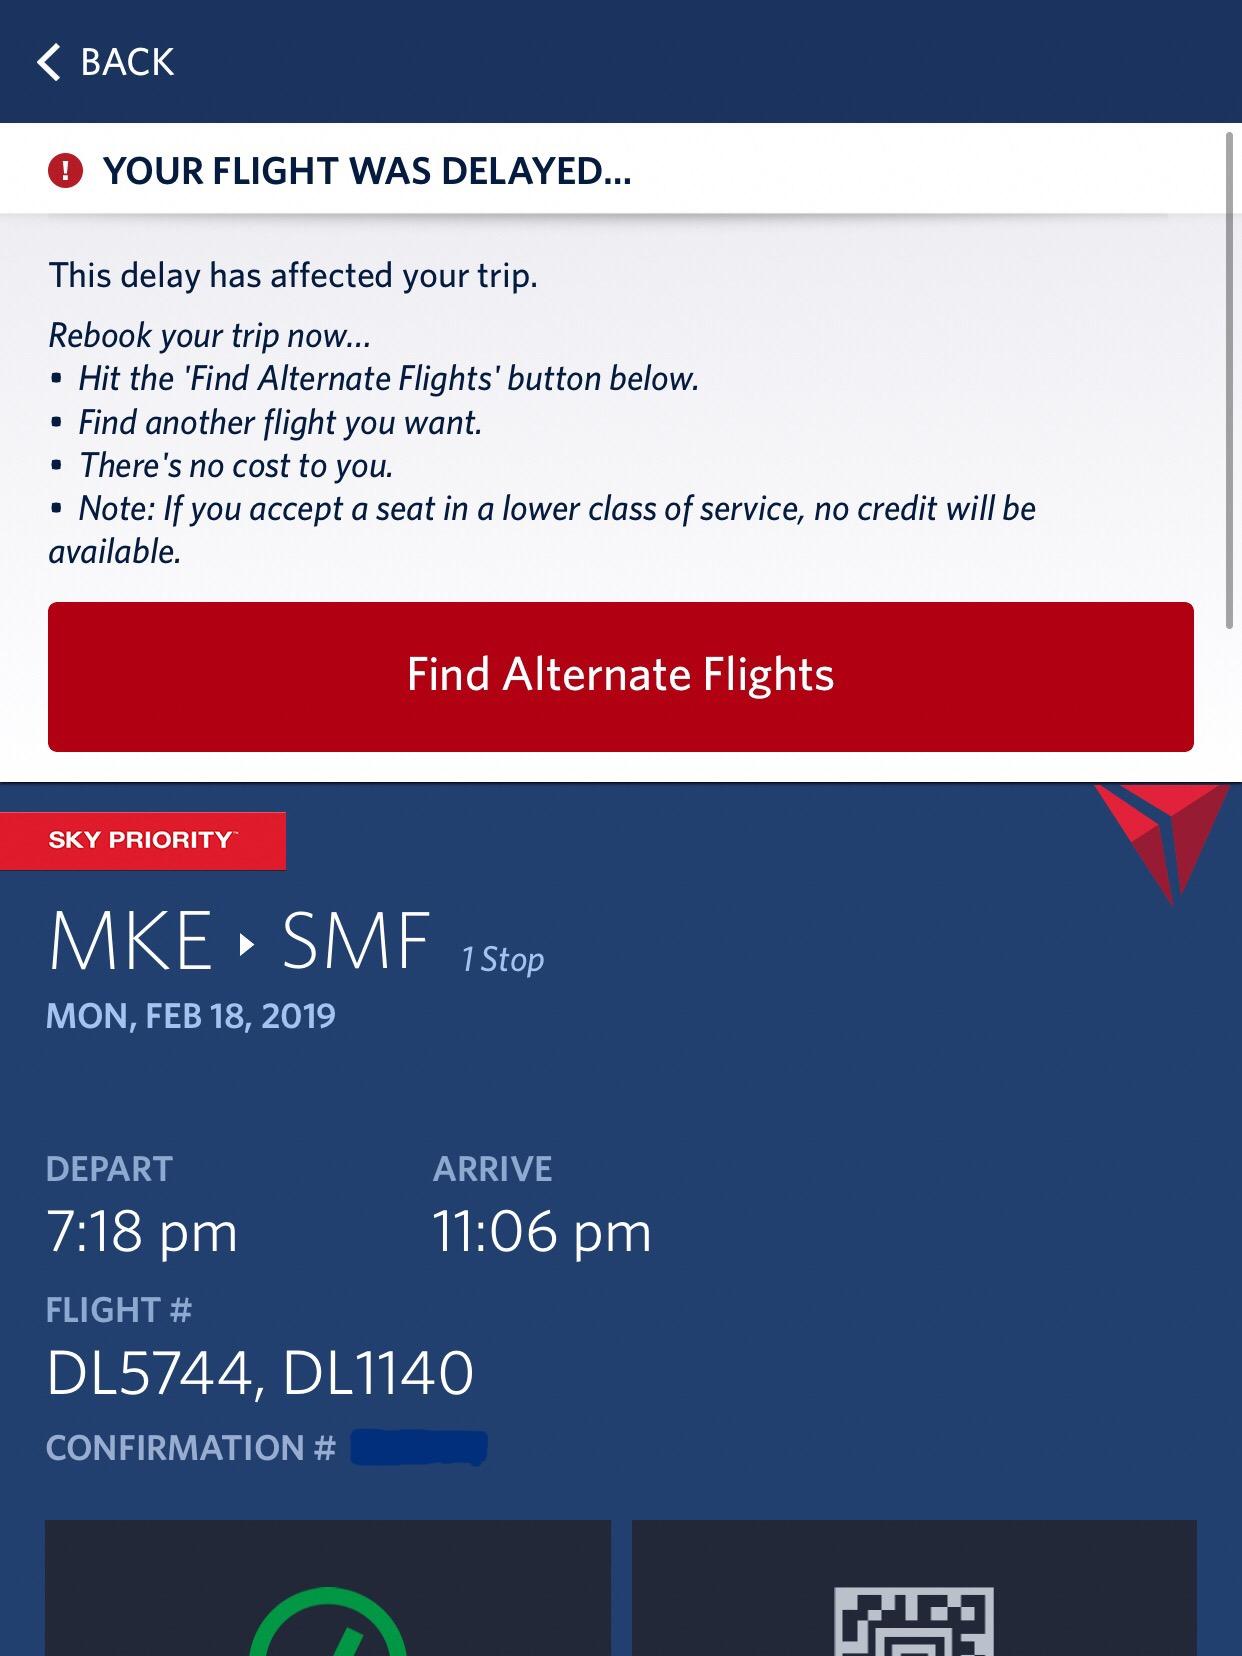 If you have a delayed flight, Delta gives you the option of selecting an alternate flight at no additional cost. There are typically several options available, though it might be the following day or include multiple layovers.